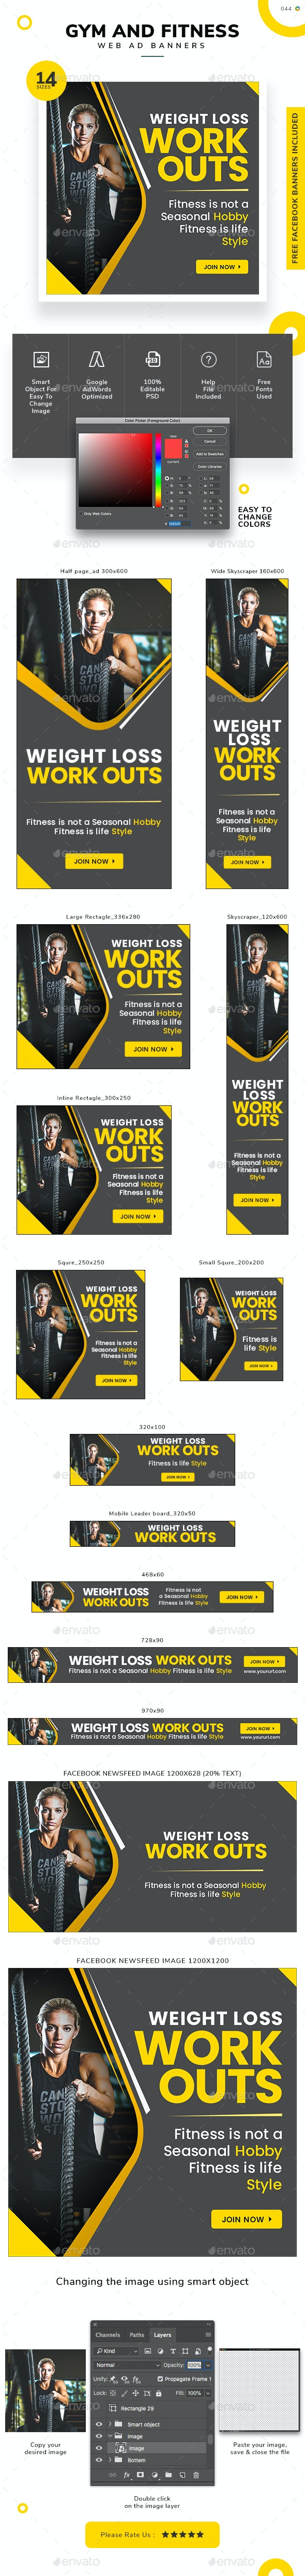 Gym and fitness Web Banner Set - Banners & Ads Web Elements